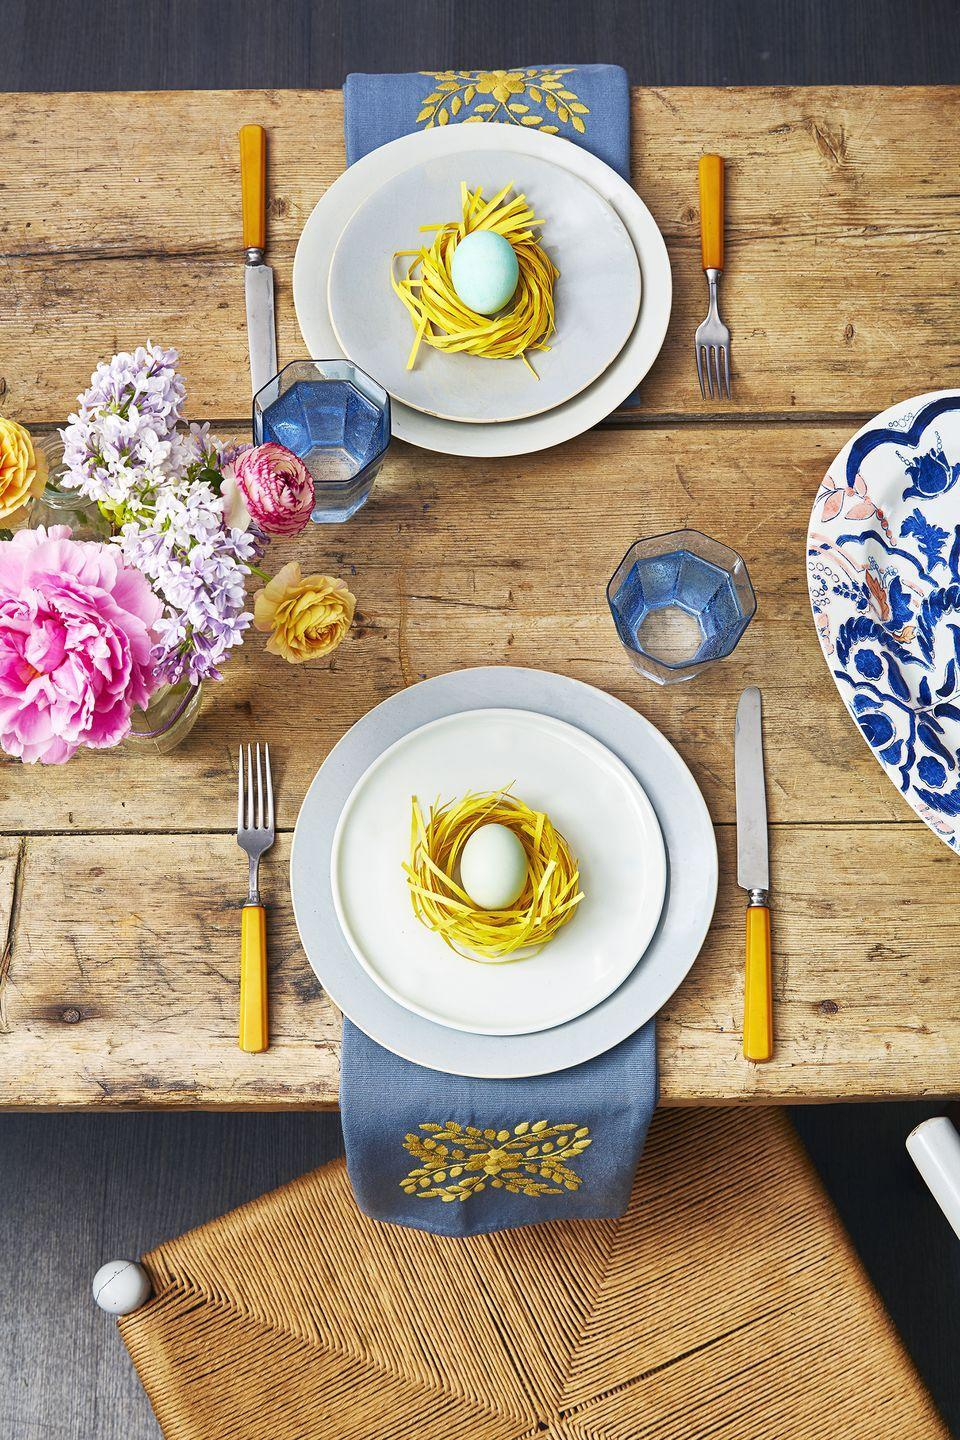 <p>Create a spring-inspired table setting by making faux-grass nests and placing decorated eggs inside. A bright bouquet completes the look. </p>